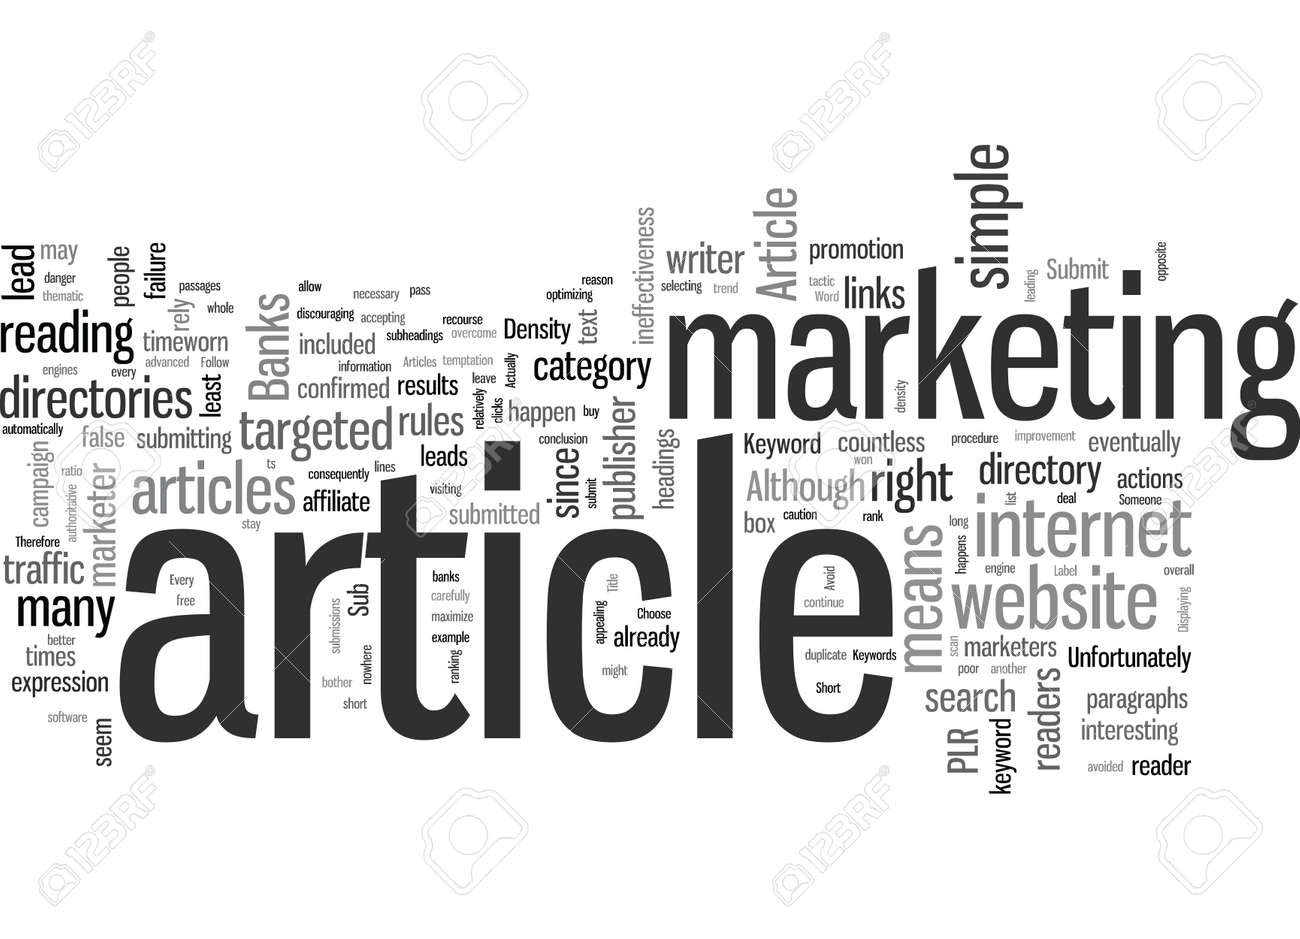 Submit Your Article To Article Directories Banks Dos Don ts - 132388368